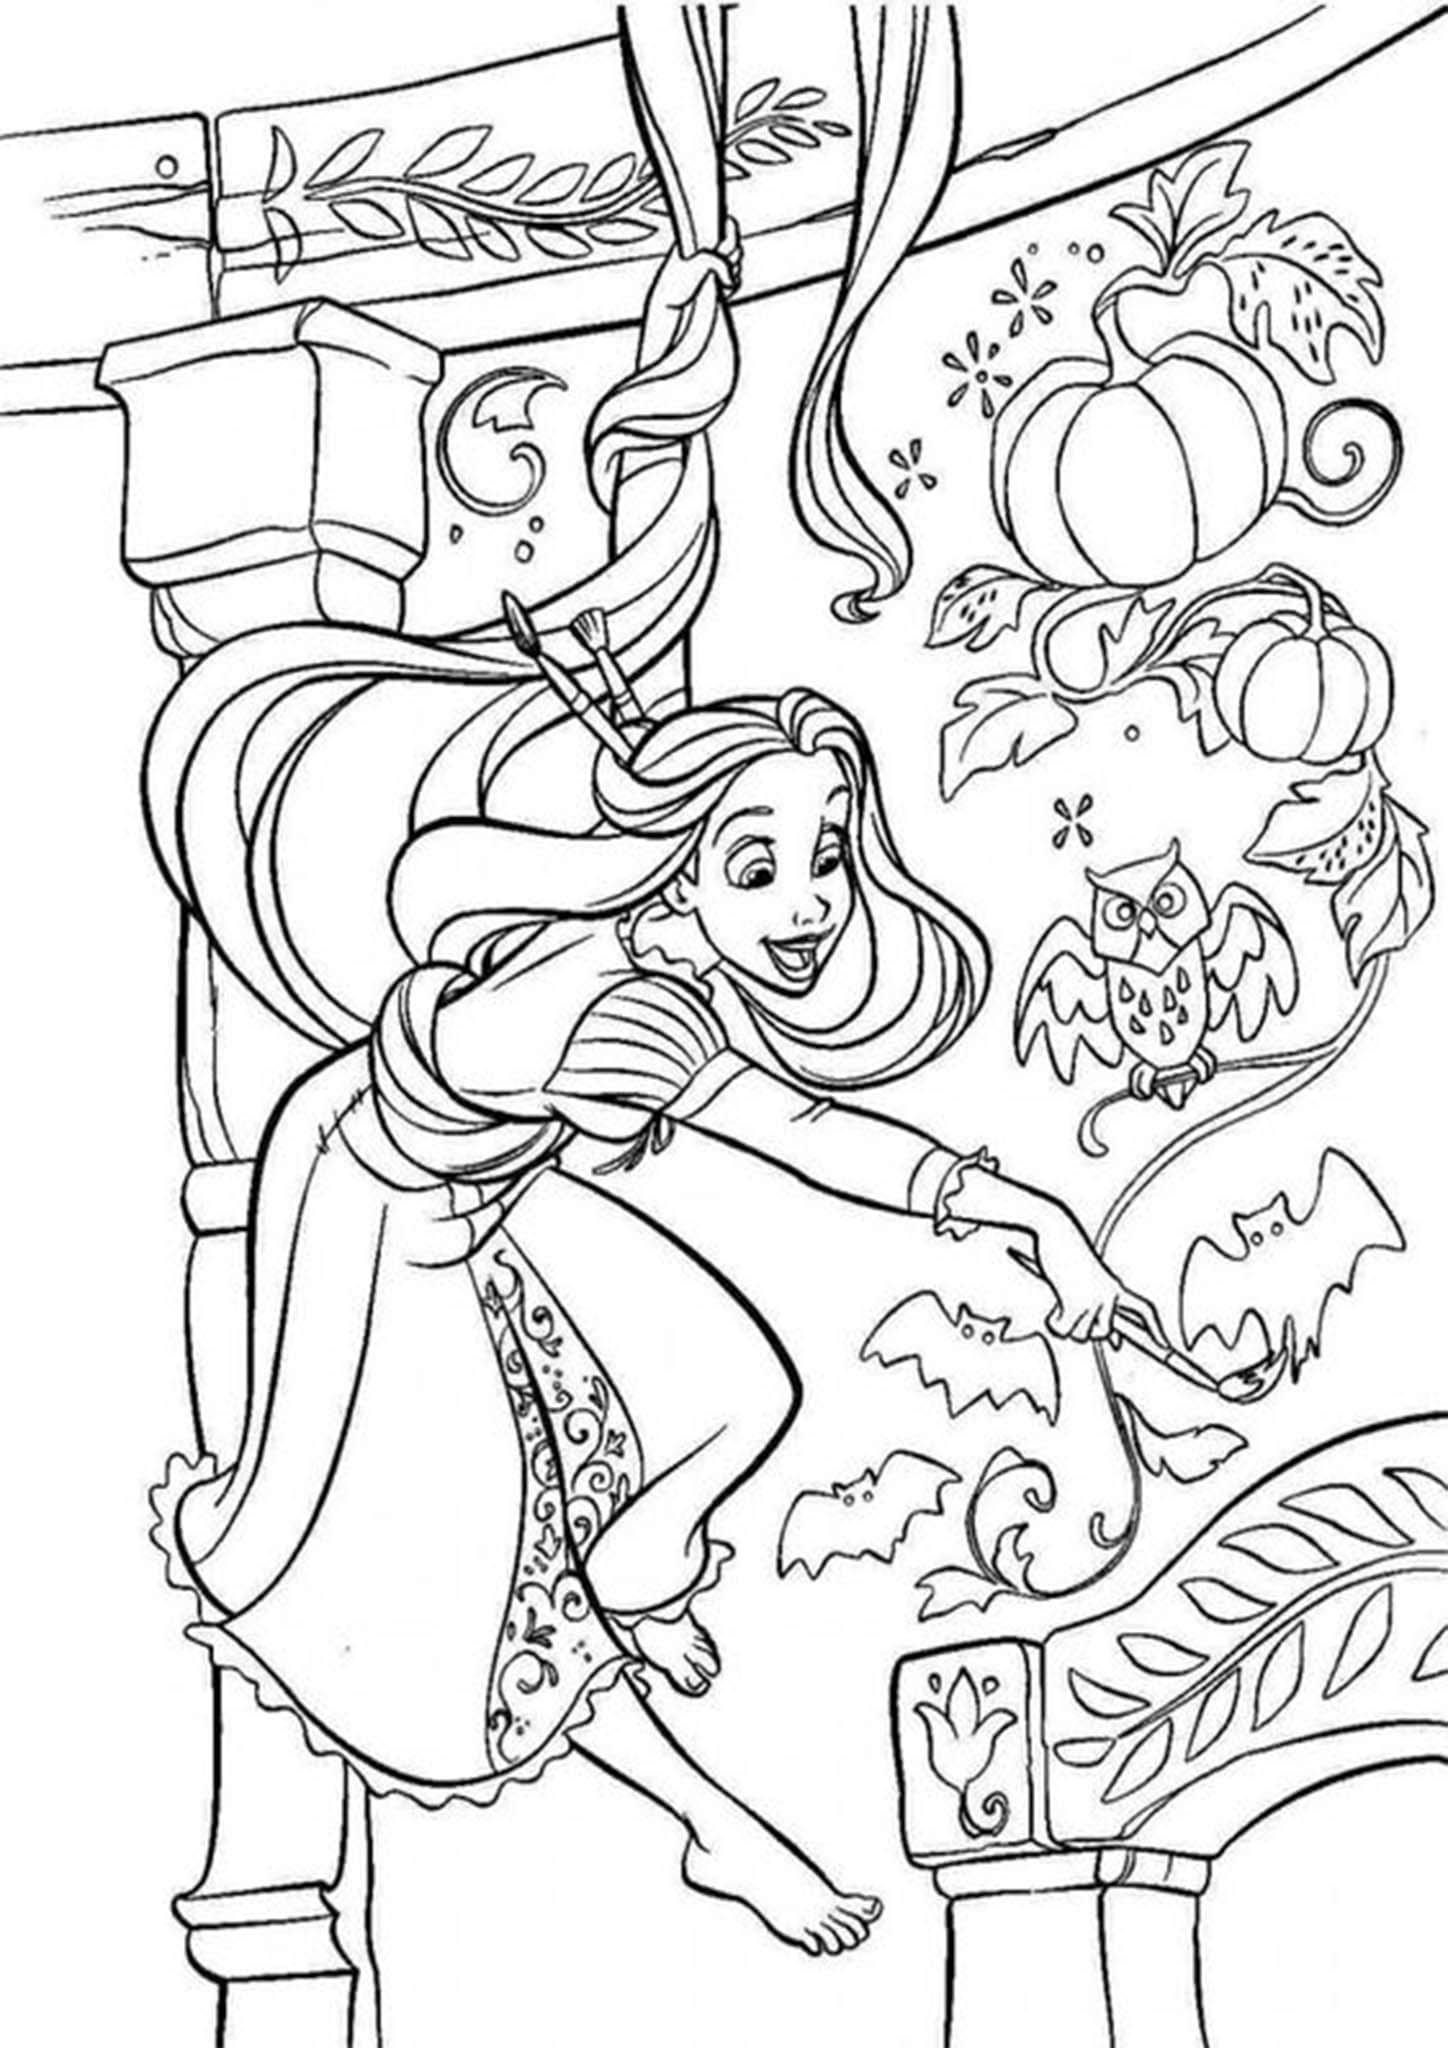 Free Easy To Print Tangled Coloring Pages Tangled Coloring Pages Rapunzel Coloring Pages Halloween Coloring Pages